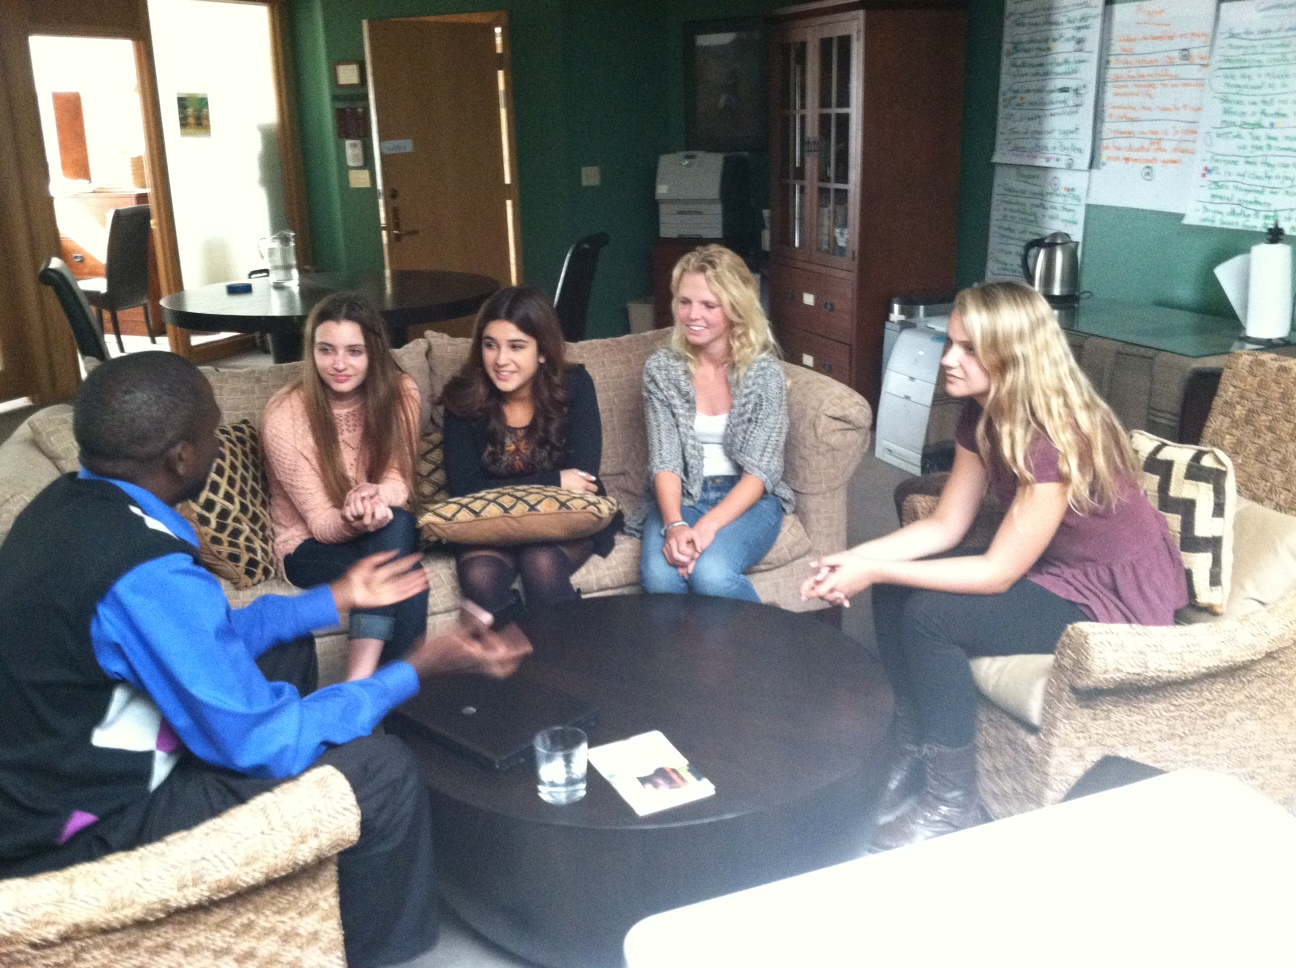 A man talks with four teenagers around a table